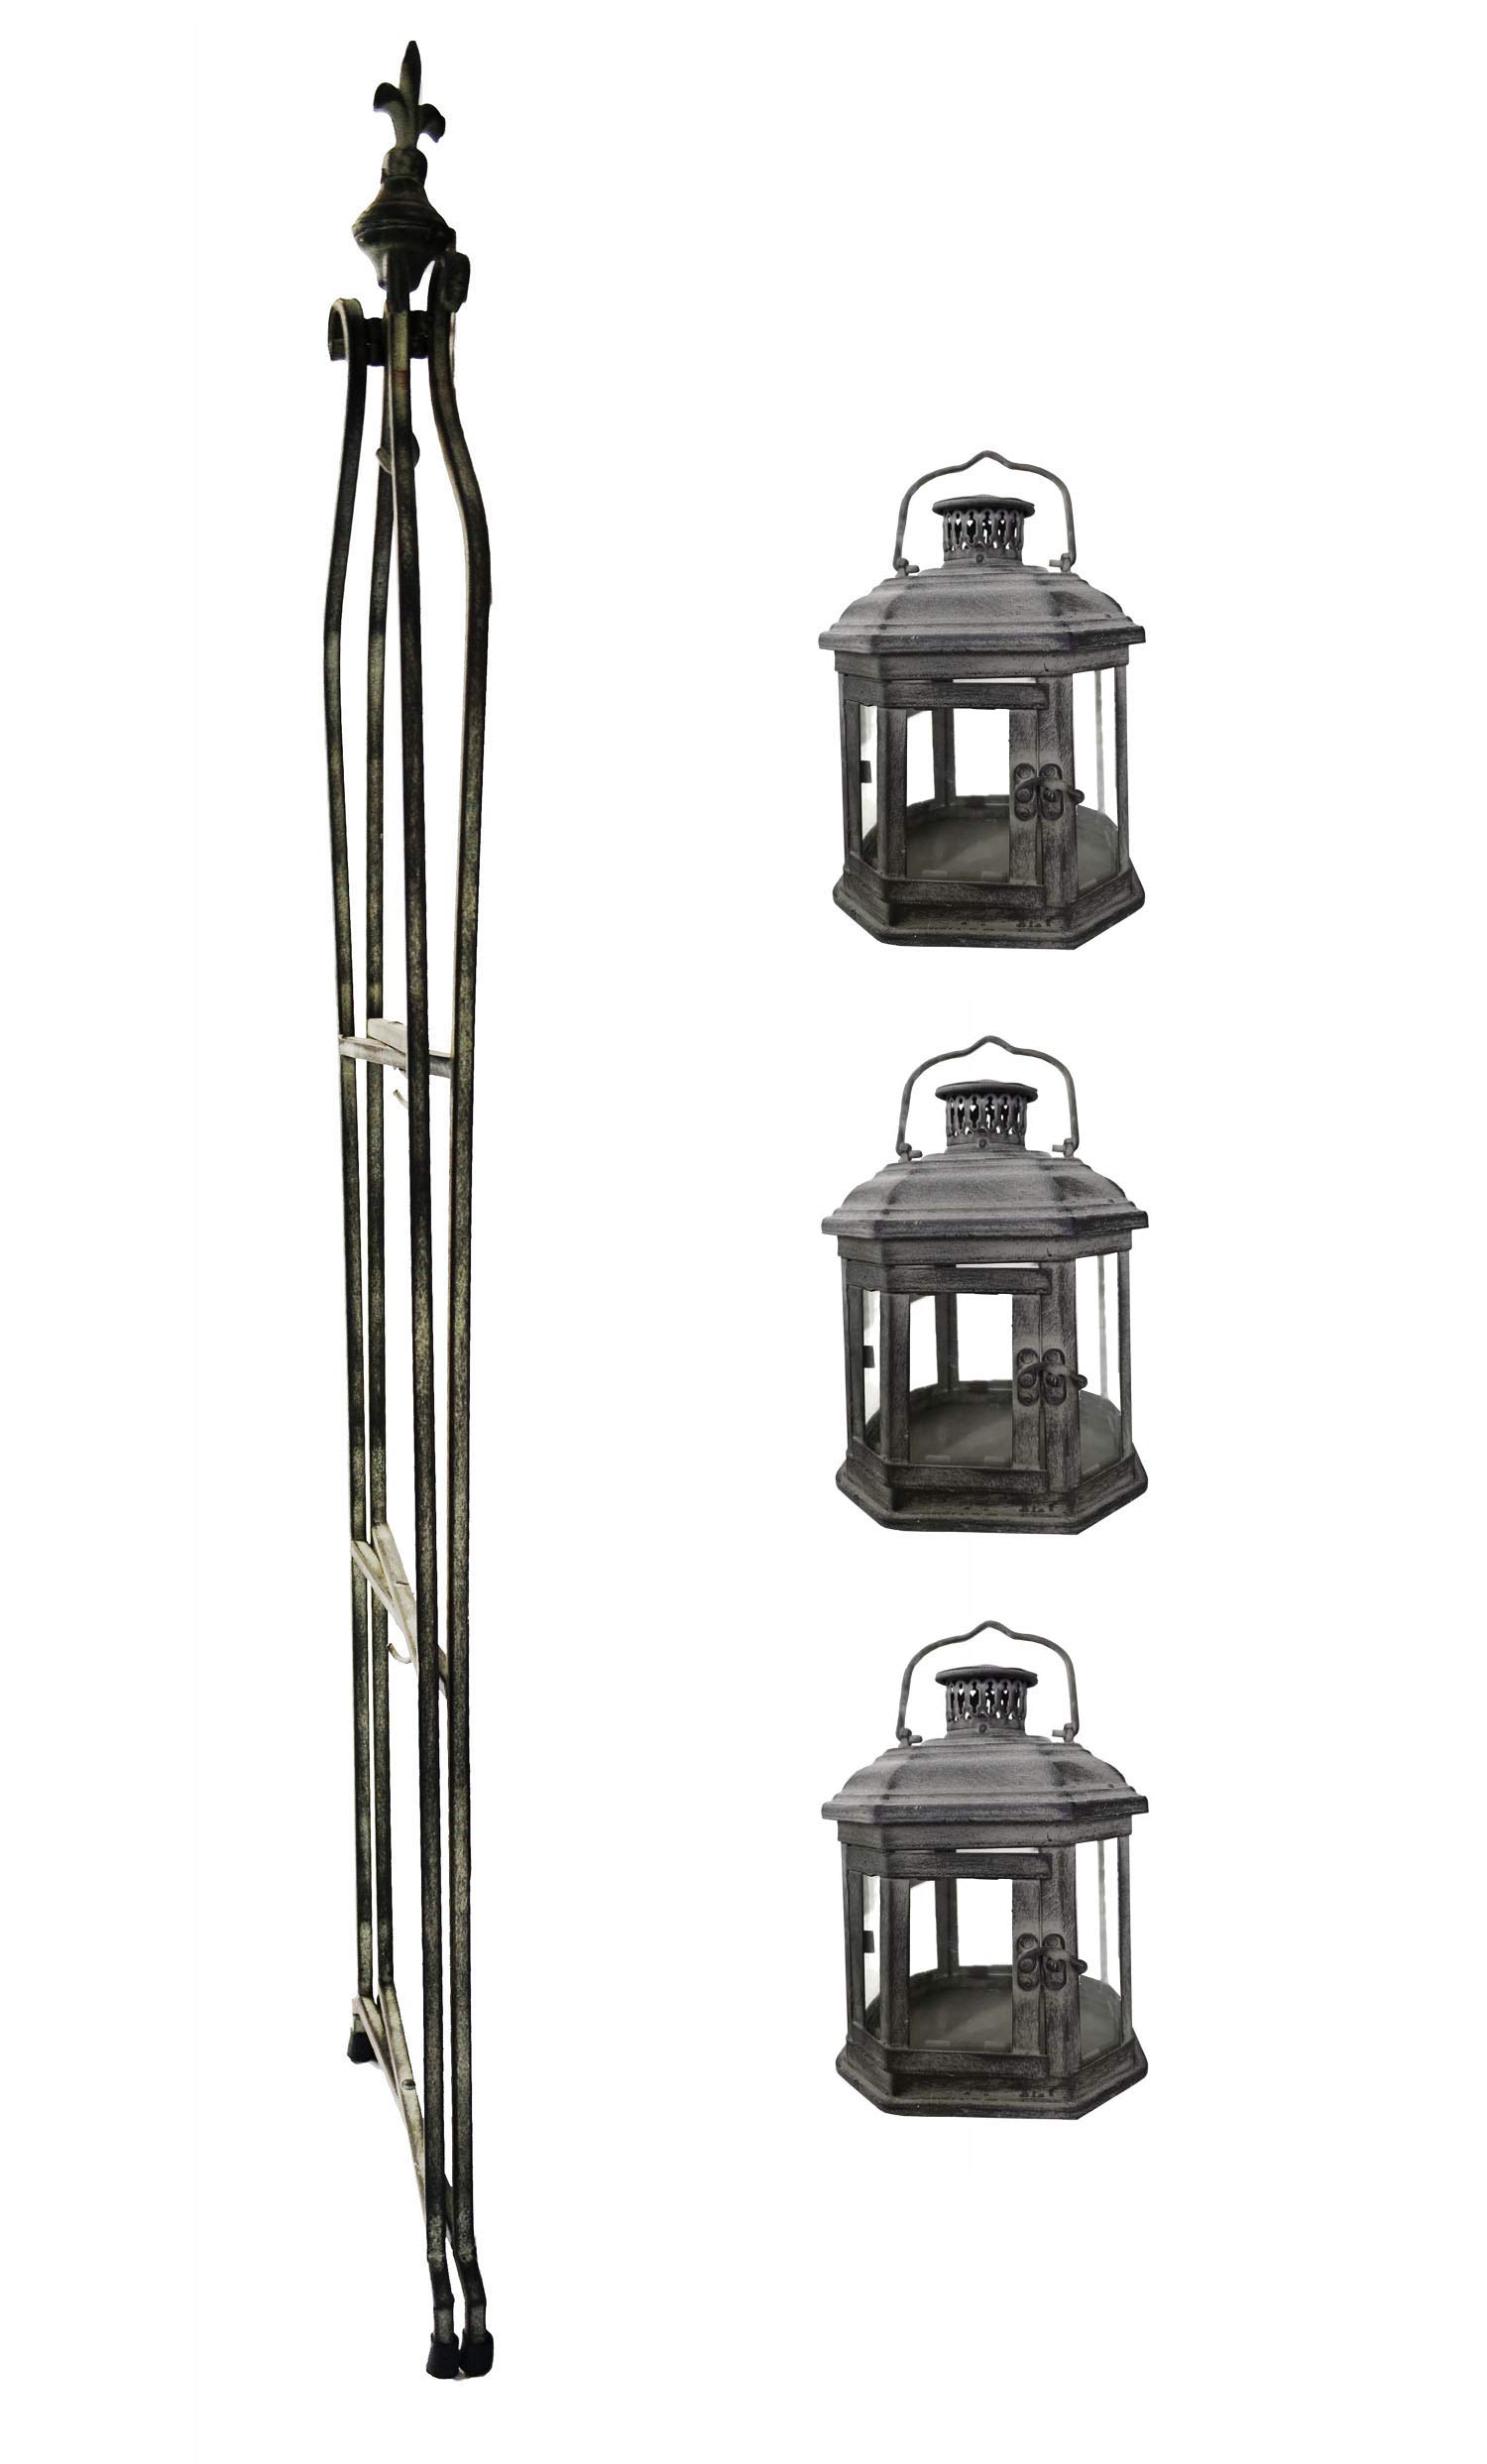 PierSurplus Metal Candle Lanterns with Stand - Three-Tier Lantern Stand for Yard Product SKU: CL221880 by PierSurplus (Image #5)